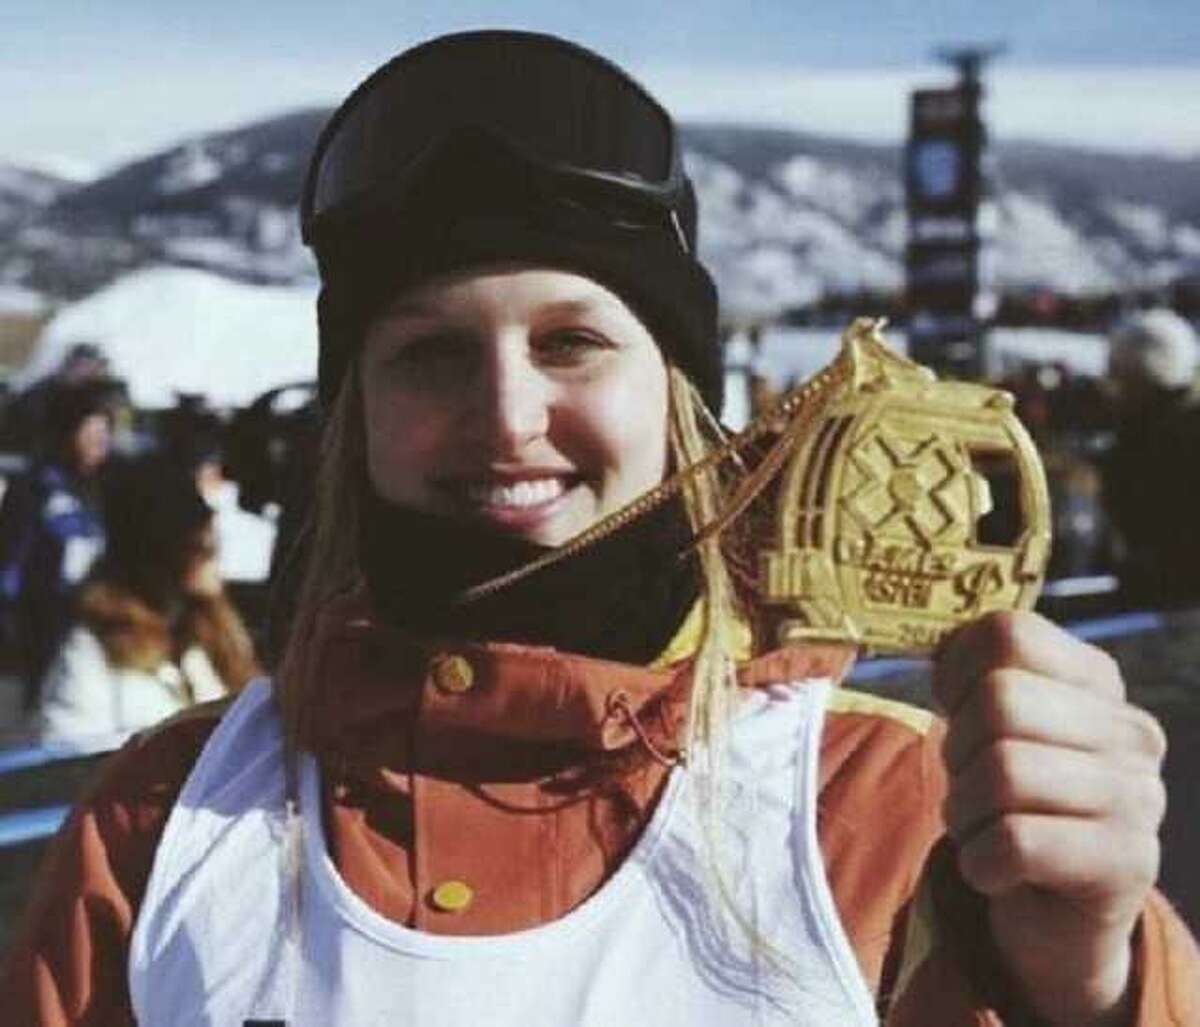 Snowboarder Julia Marino, a 2018 Olympian and five-time X Games medalist, and Dr. Kevin Plancher, a leader in orthopaedics, sports medicine and treatment of sports injury and rehabilitation, will speak at an Injury Prevention and Healthy & Active Lifestyle seminar. The free event will be from 7 to 8 p. Monday at the Greenwich Library. Due to limited seating, registration is suggested by visiting greenwichlibrary.org or calling 203-625-6549.